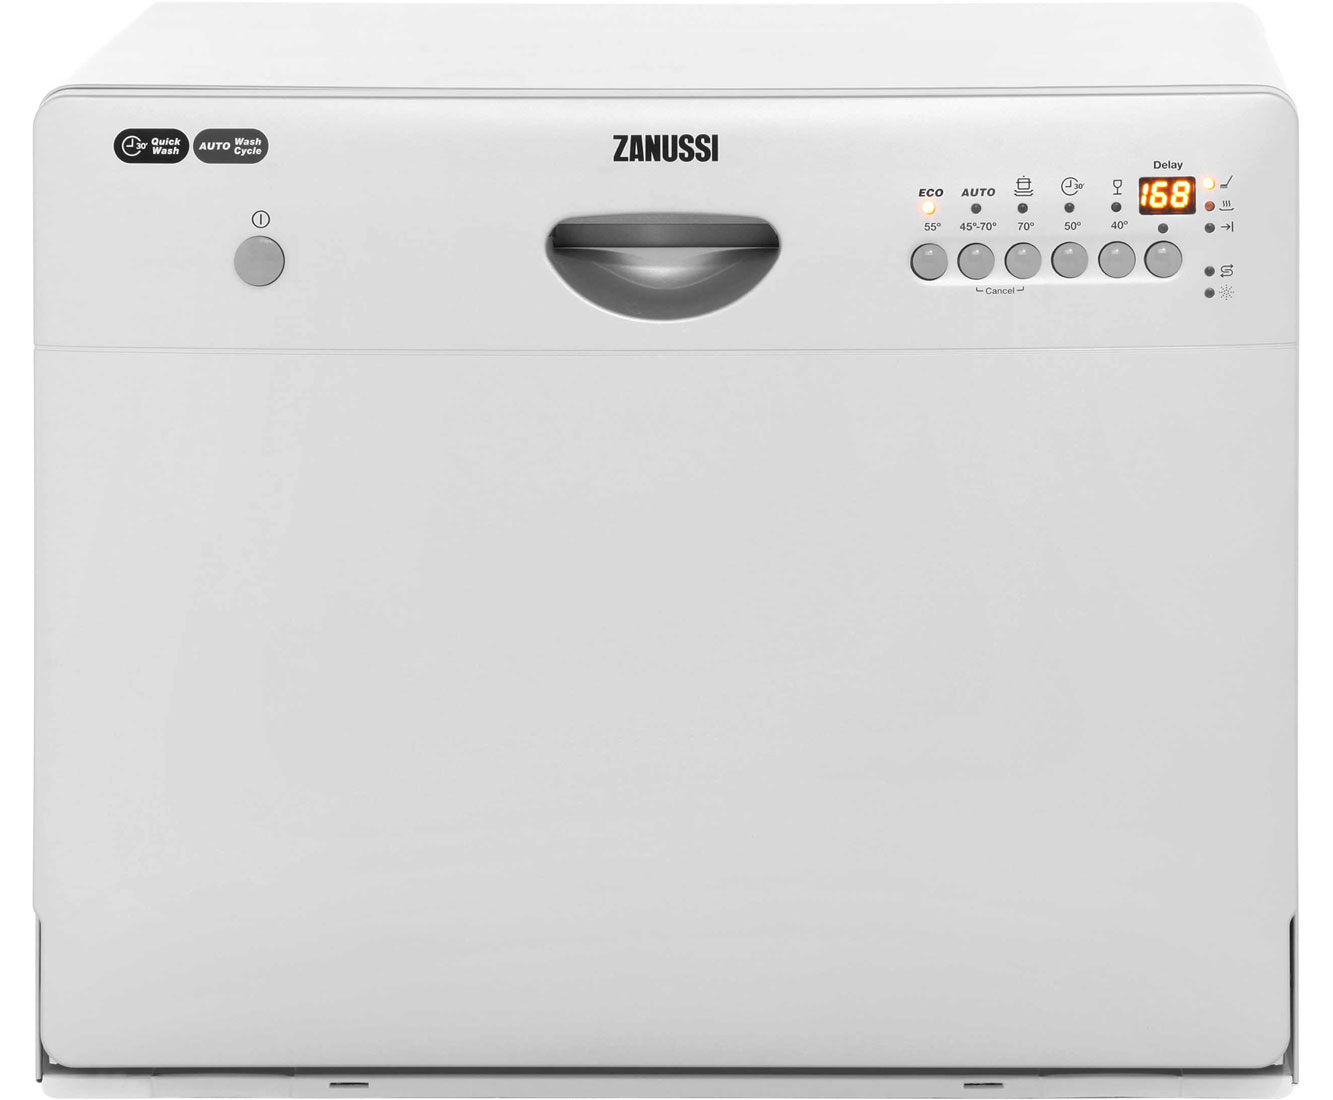 Zanussi ZDM16301SA Table Top Dishwasher - Silver